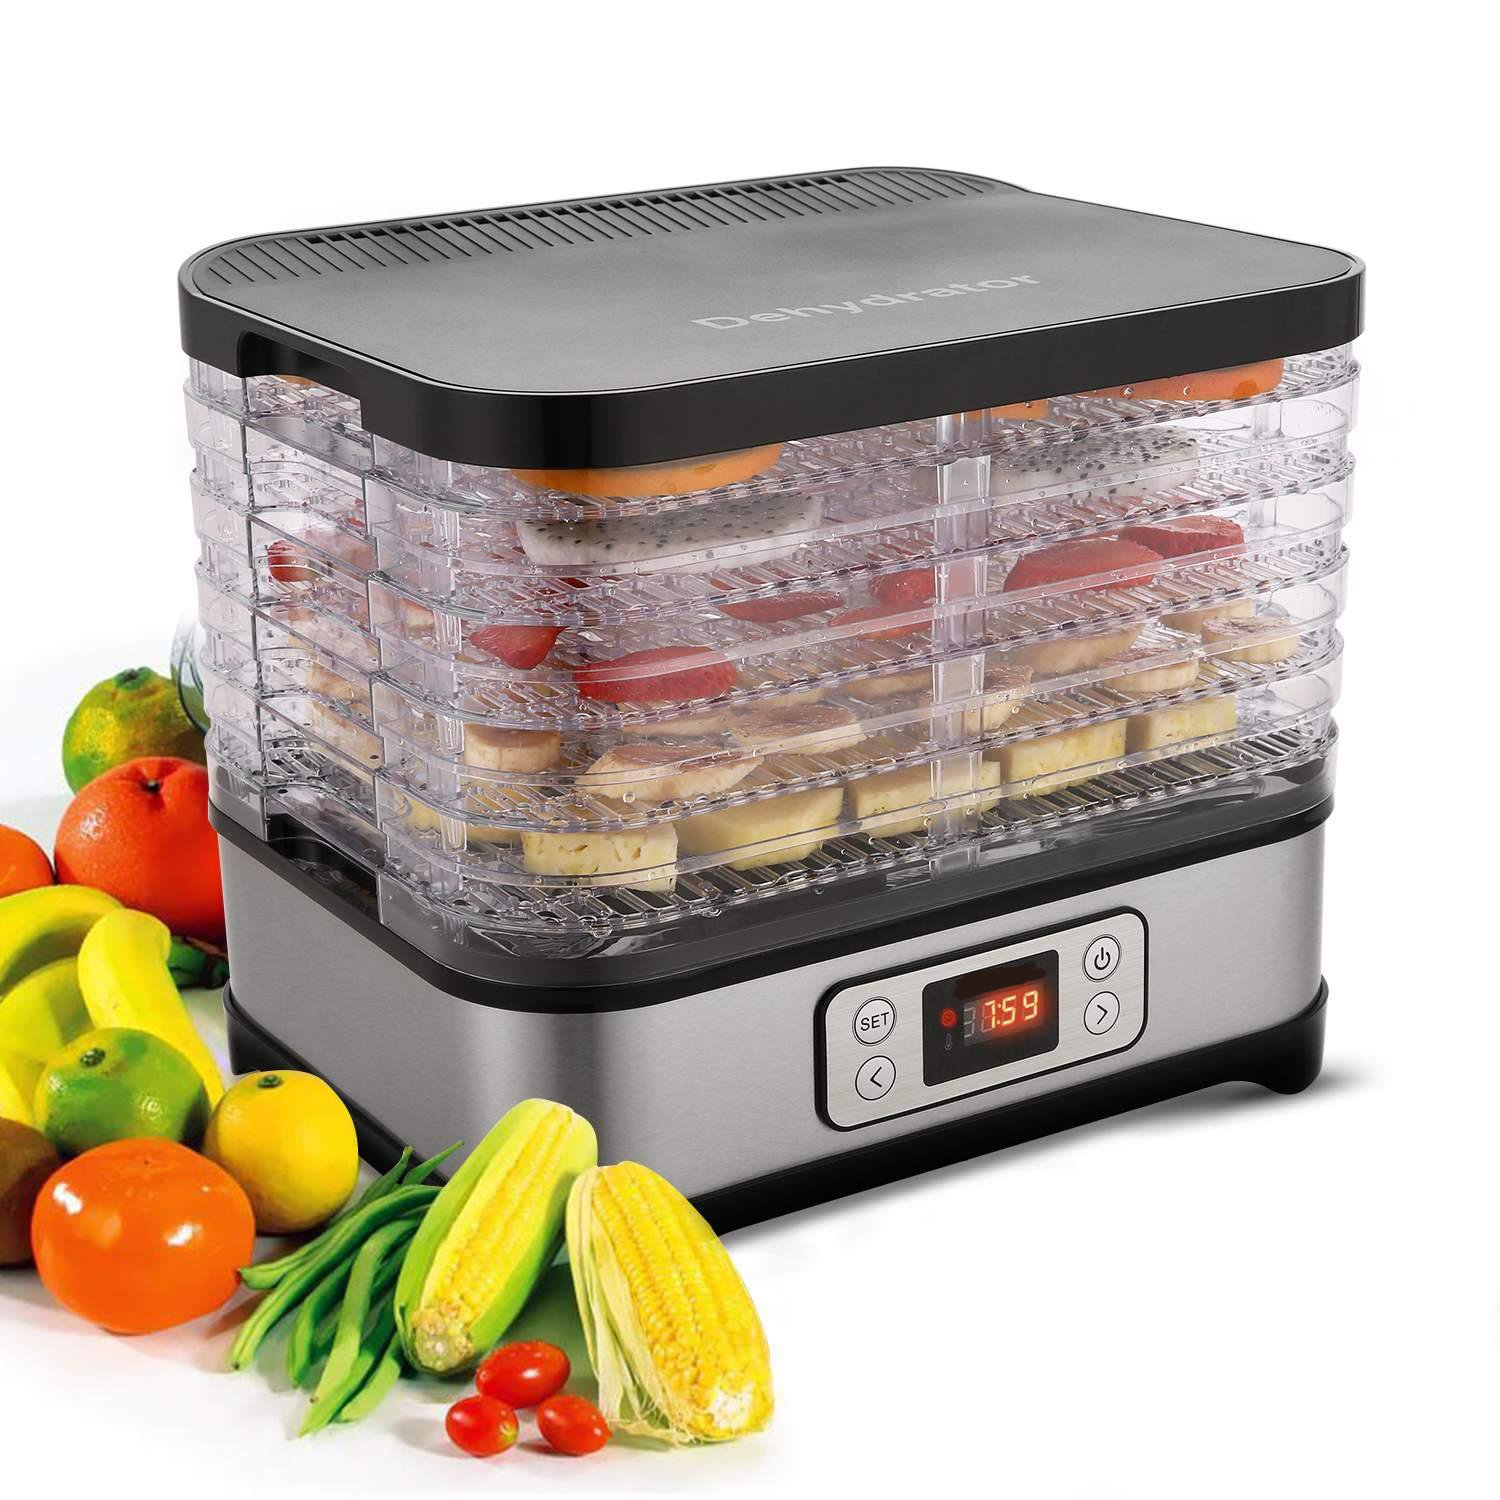 Stainless Steel Kitchen Commercial Food Dehydrator,5 Trays Quiet Fruit Dryer/Jerky Maker with Timer, Temperature Control[US STOCK]